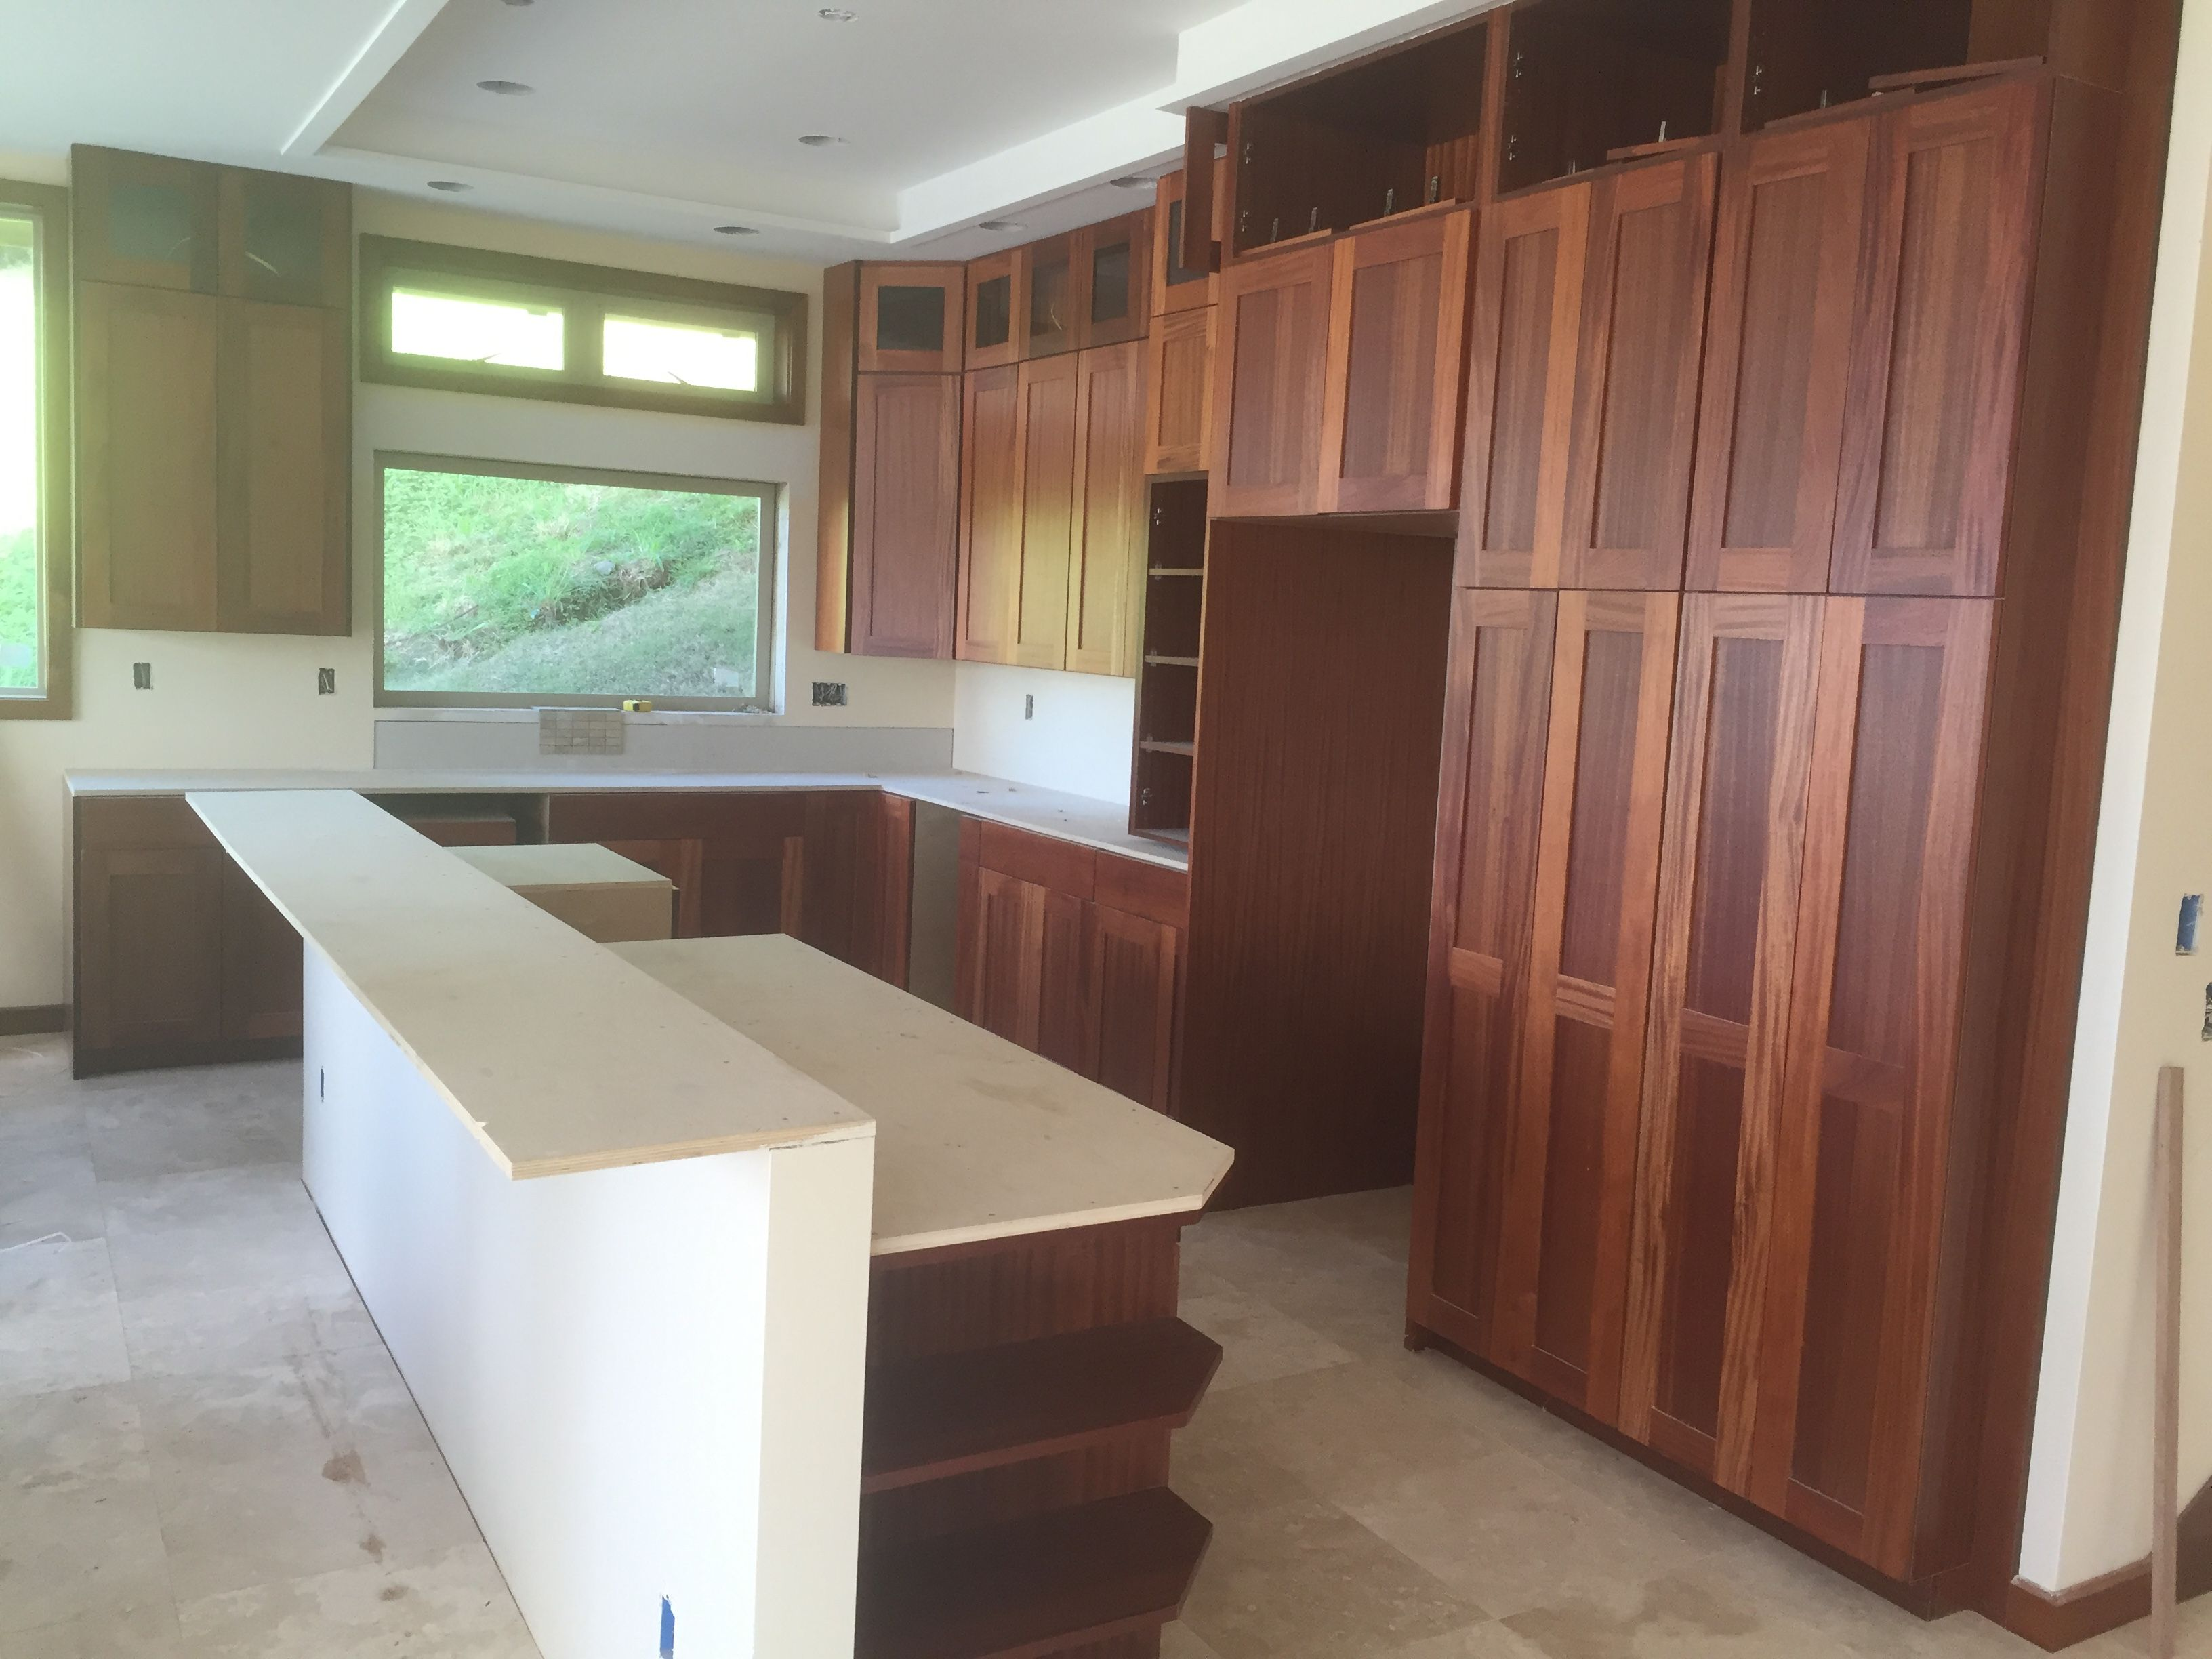 Kitchen Cabinets Yakima Wa kitchen cabinets in beautiful african mahogany, builttotal